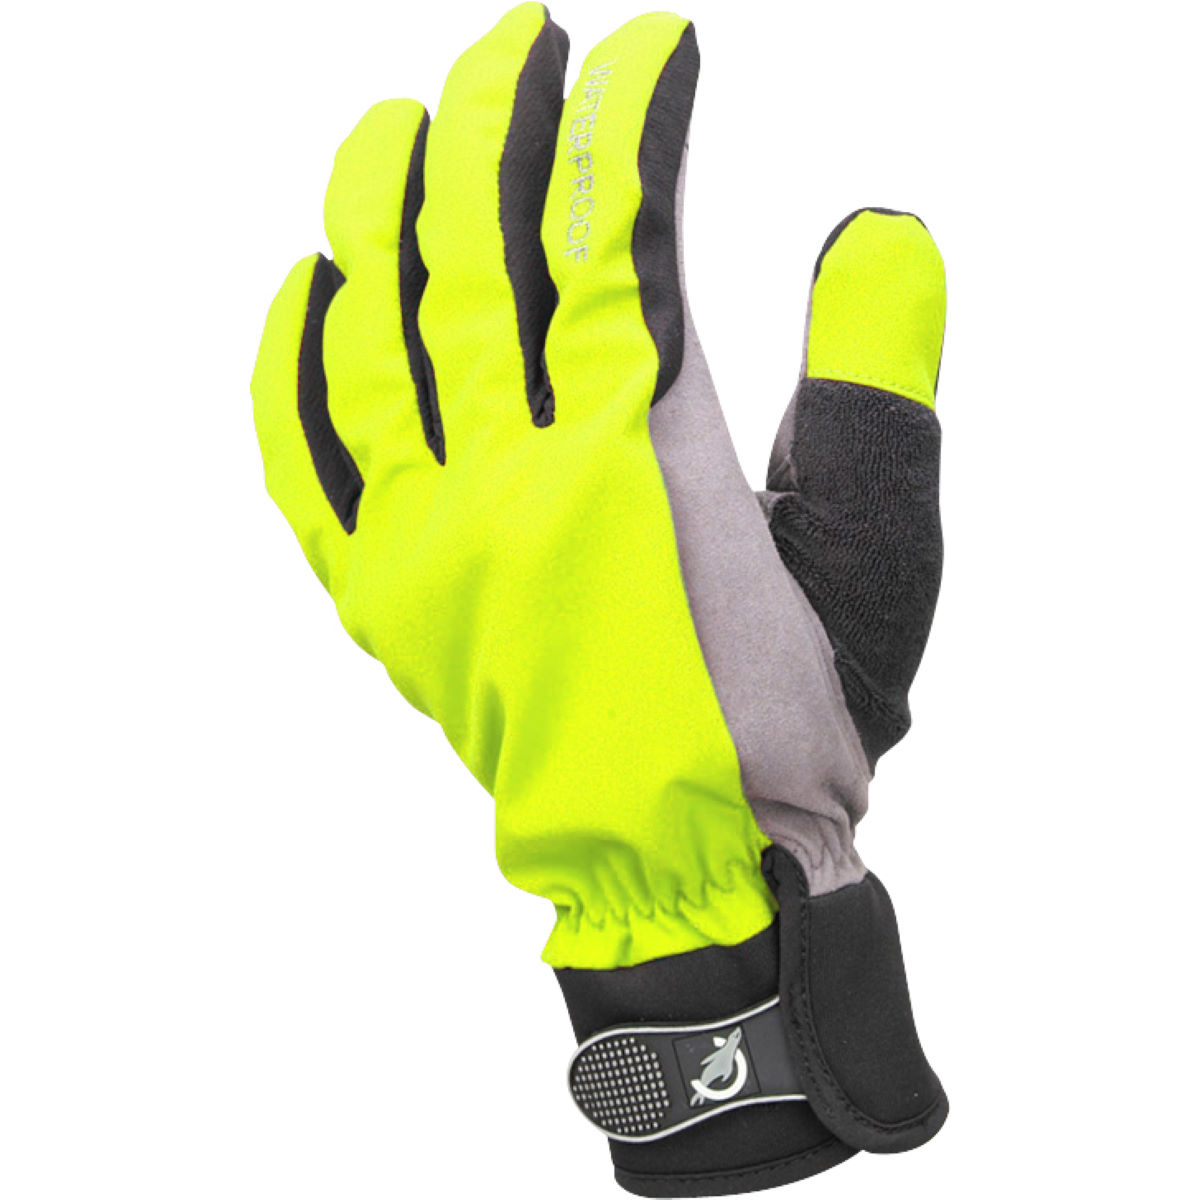 SealSkinz All Weather Cycling Gloves